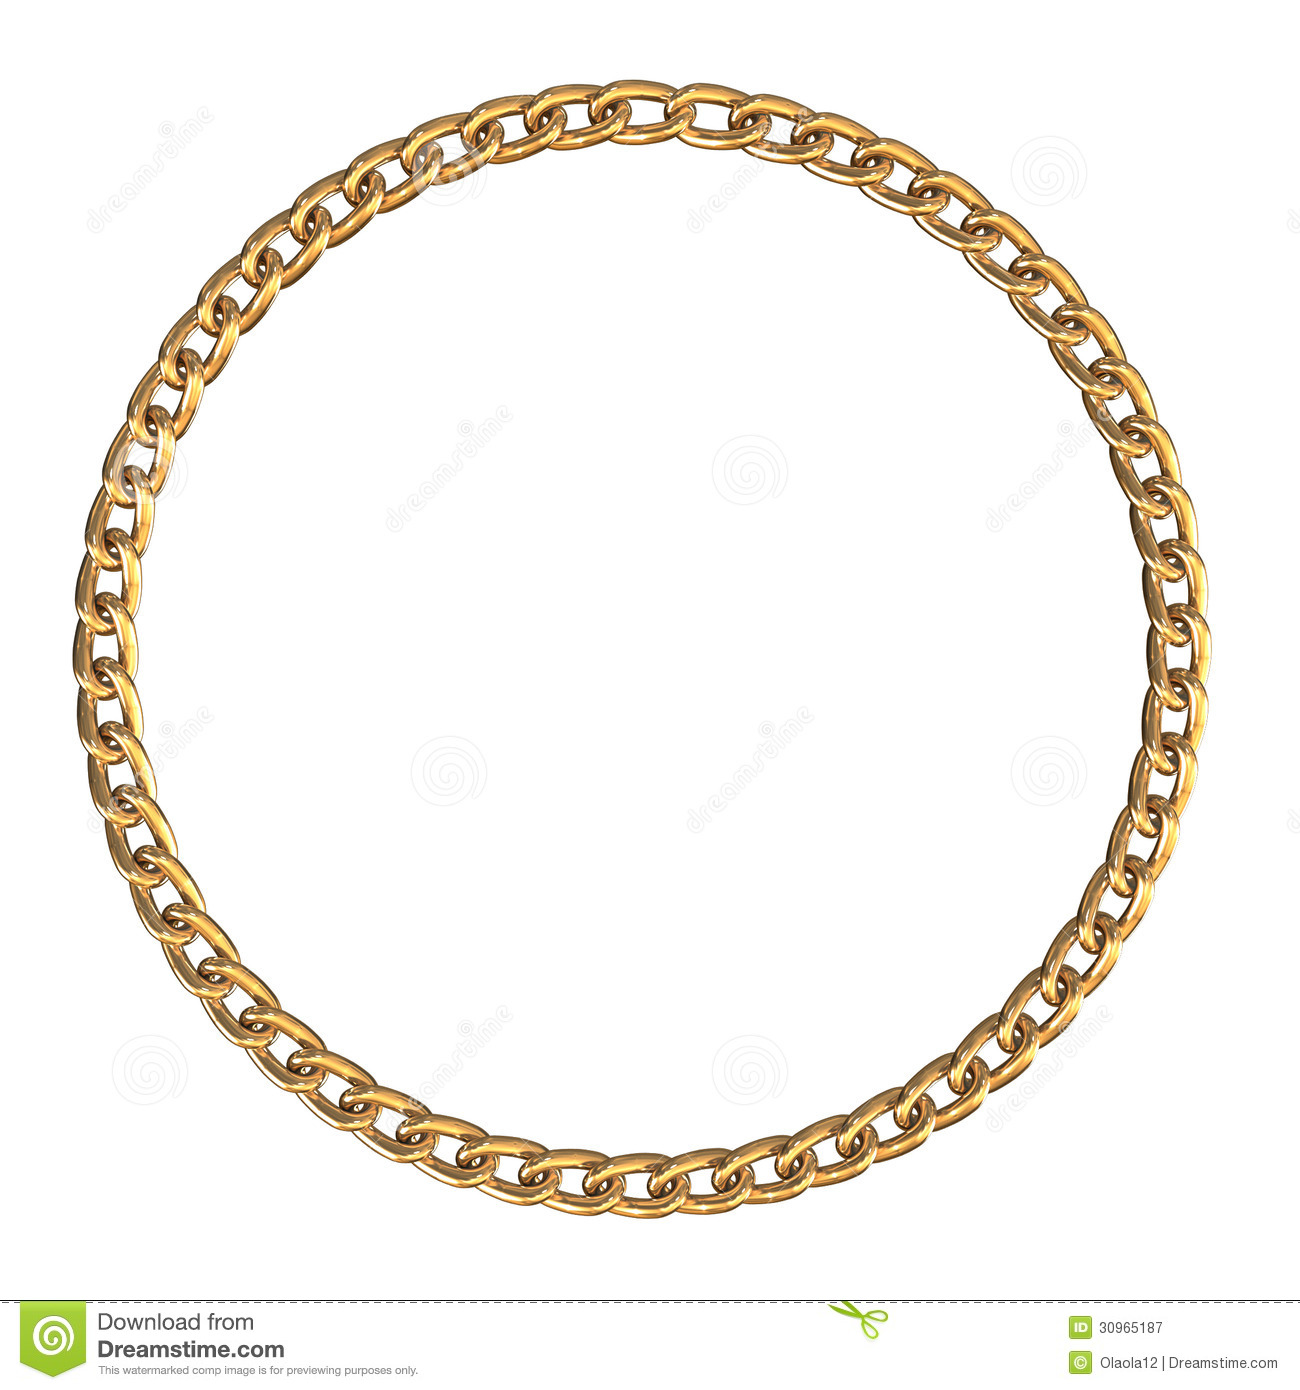 round frame made with golden chain on white background